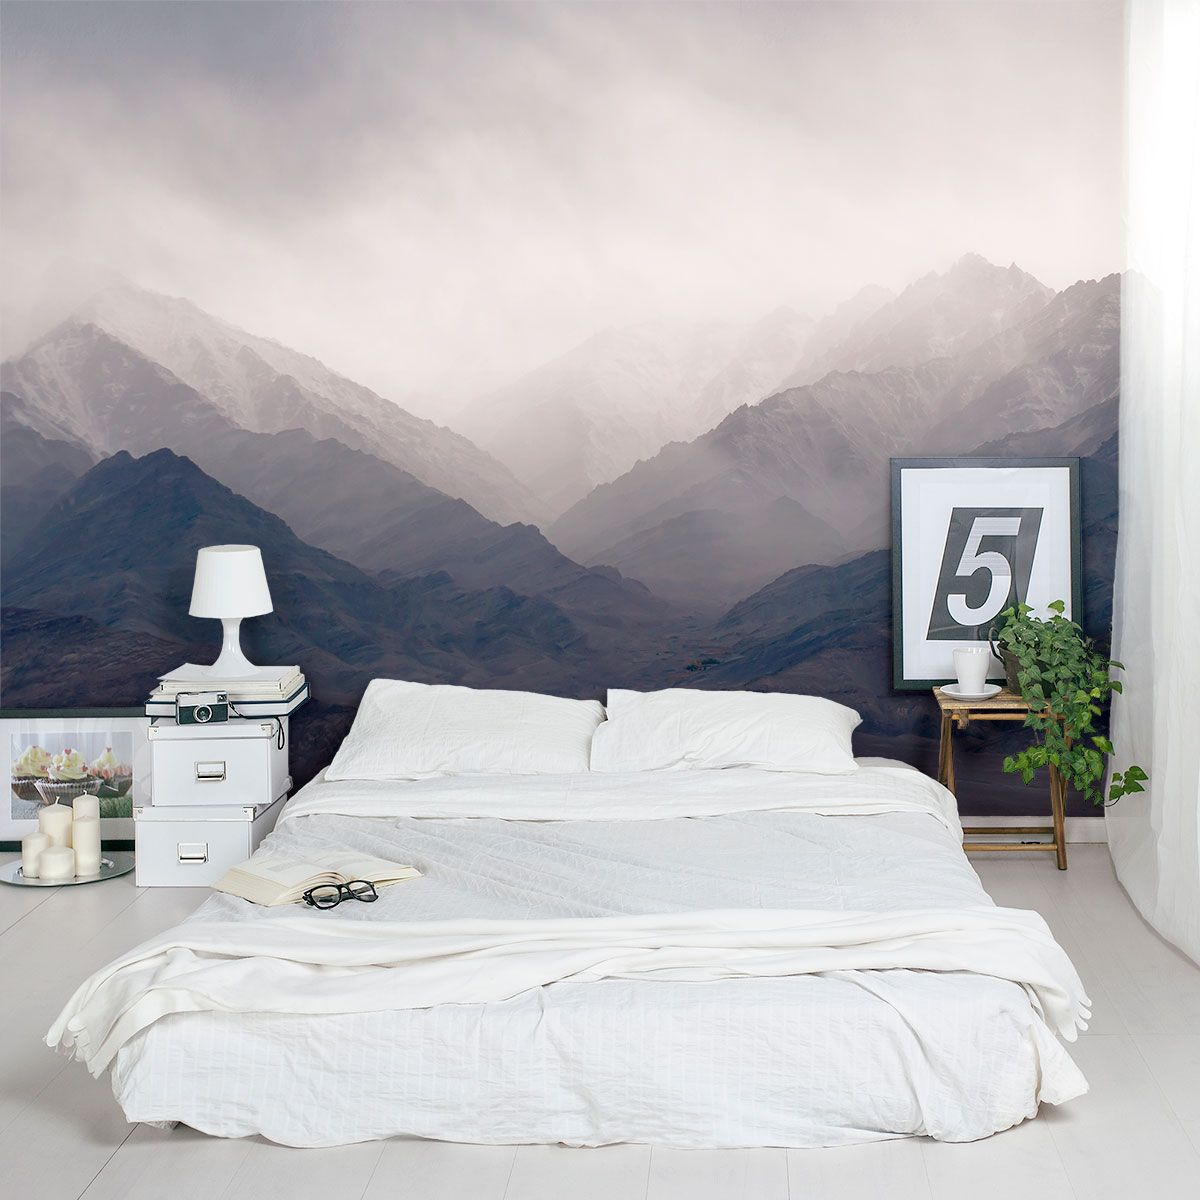 Misty Mountains Wall Mural Mountain Mural Home Bedroom Bedroom